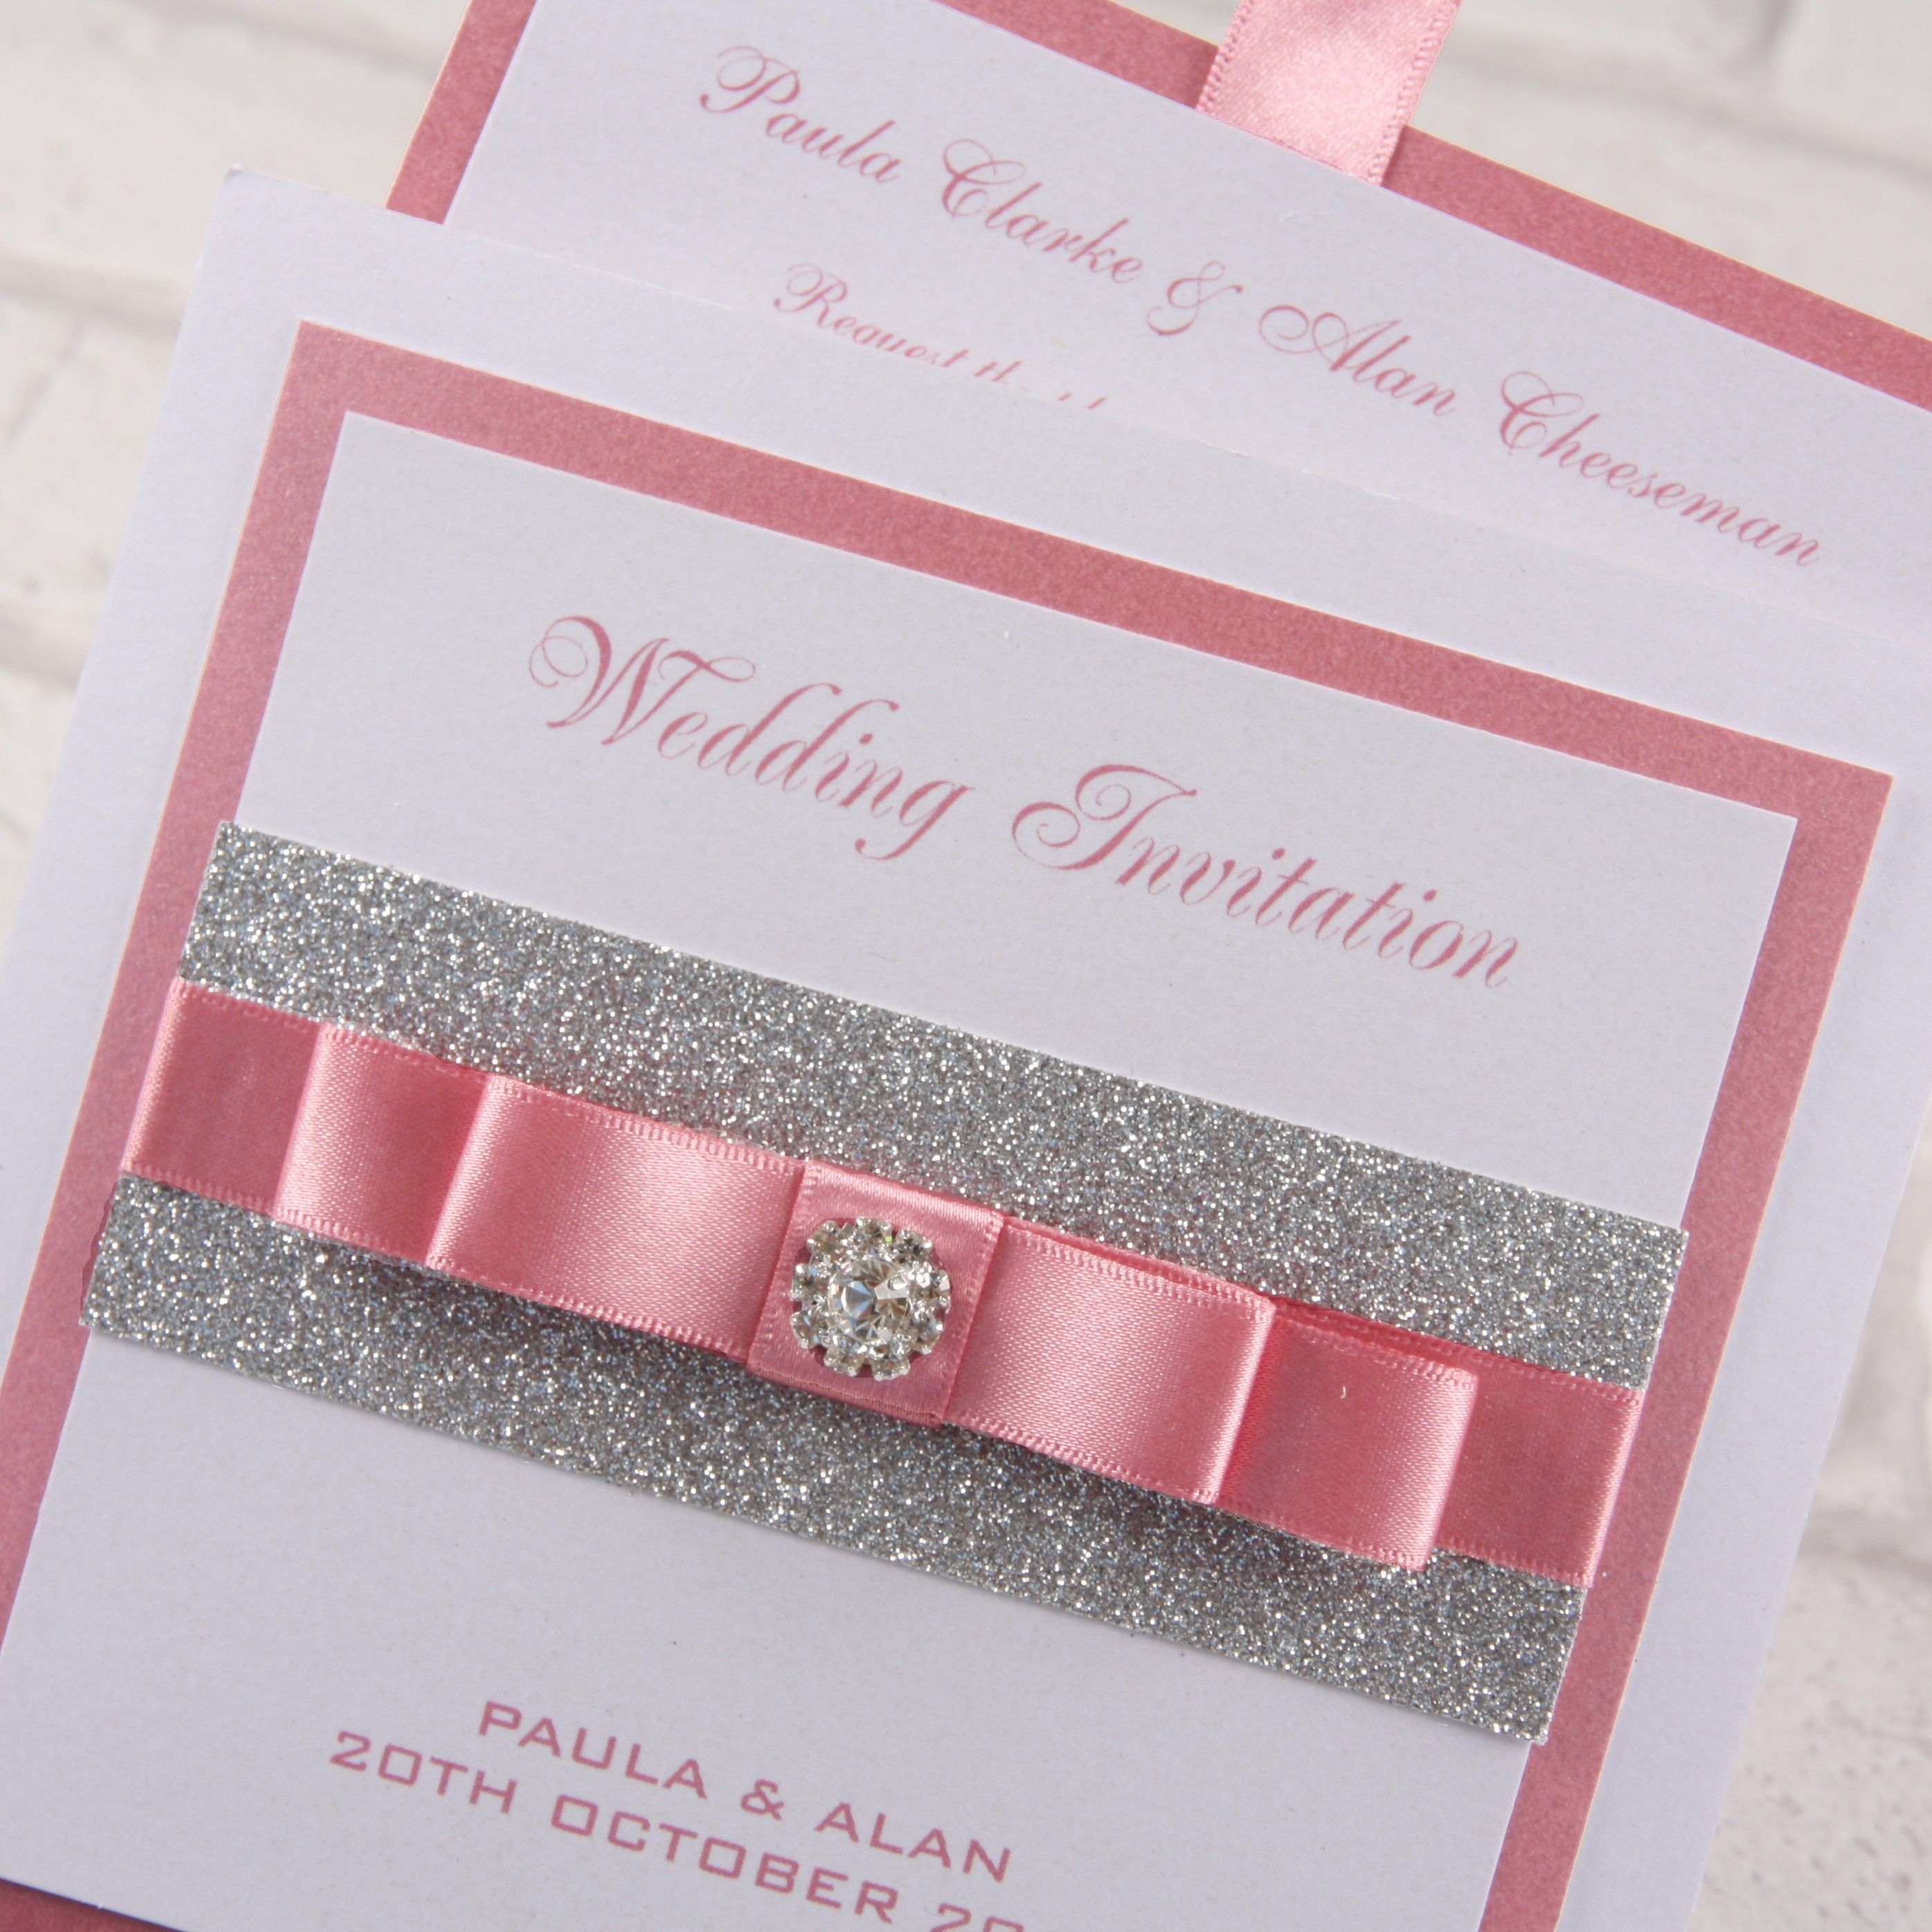 Luxury Pocketfold Wedding Invitations: Luxury Premium Wallet Invitations From Our 'Twinkle